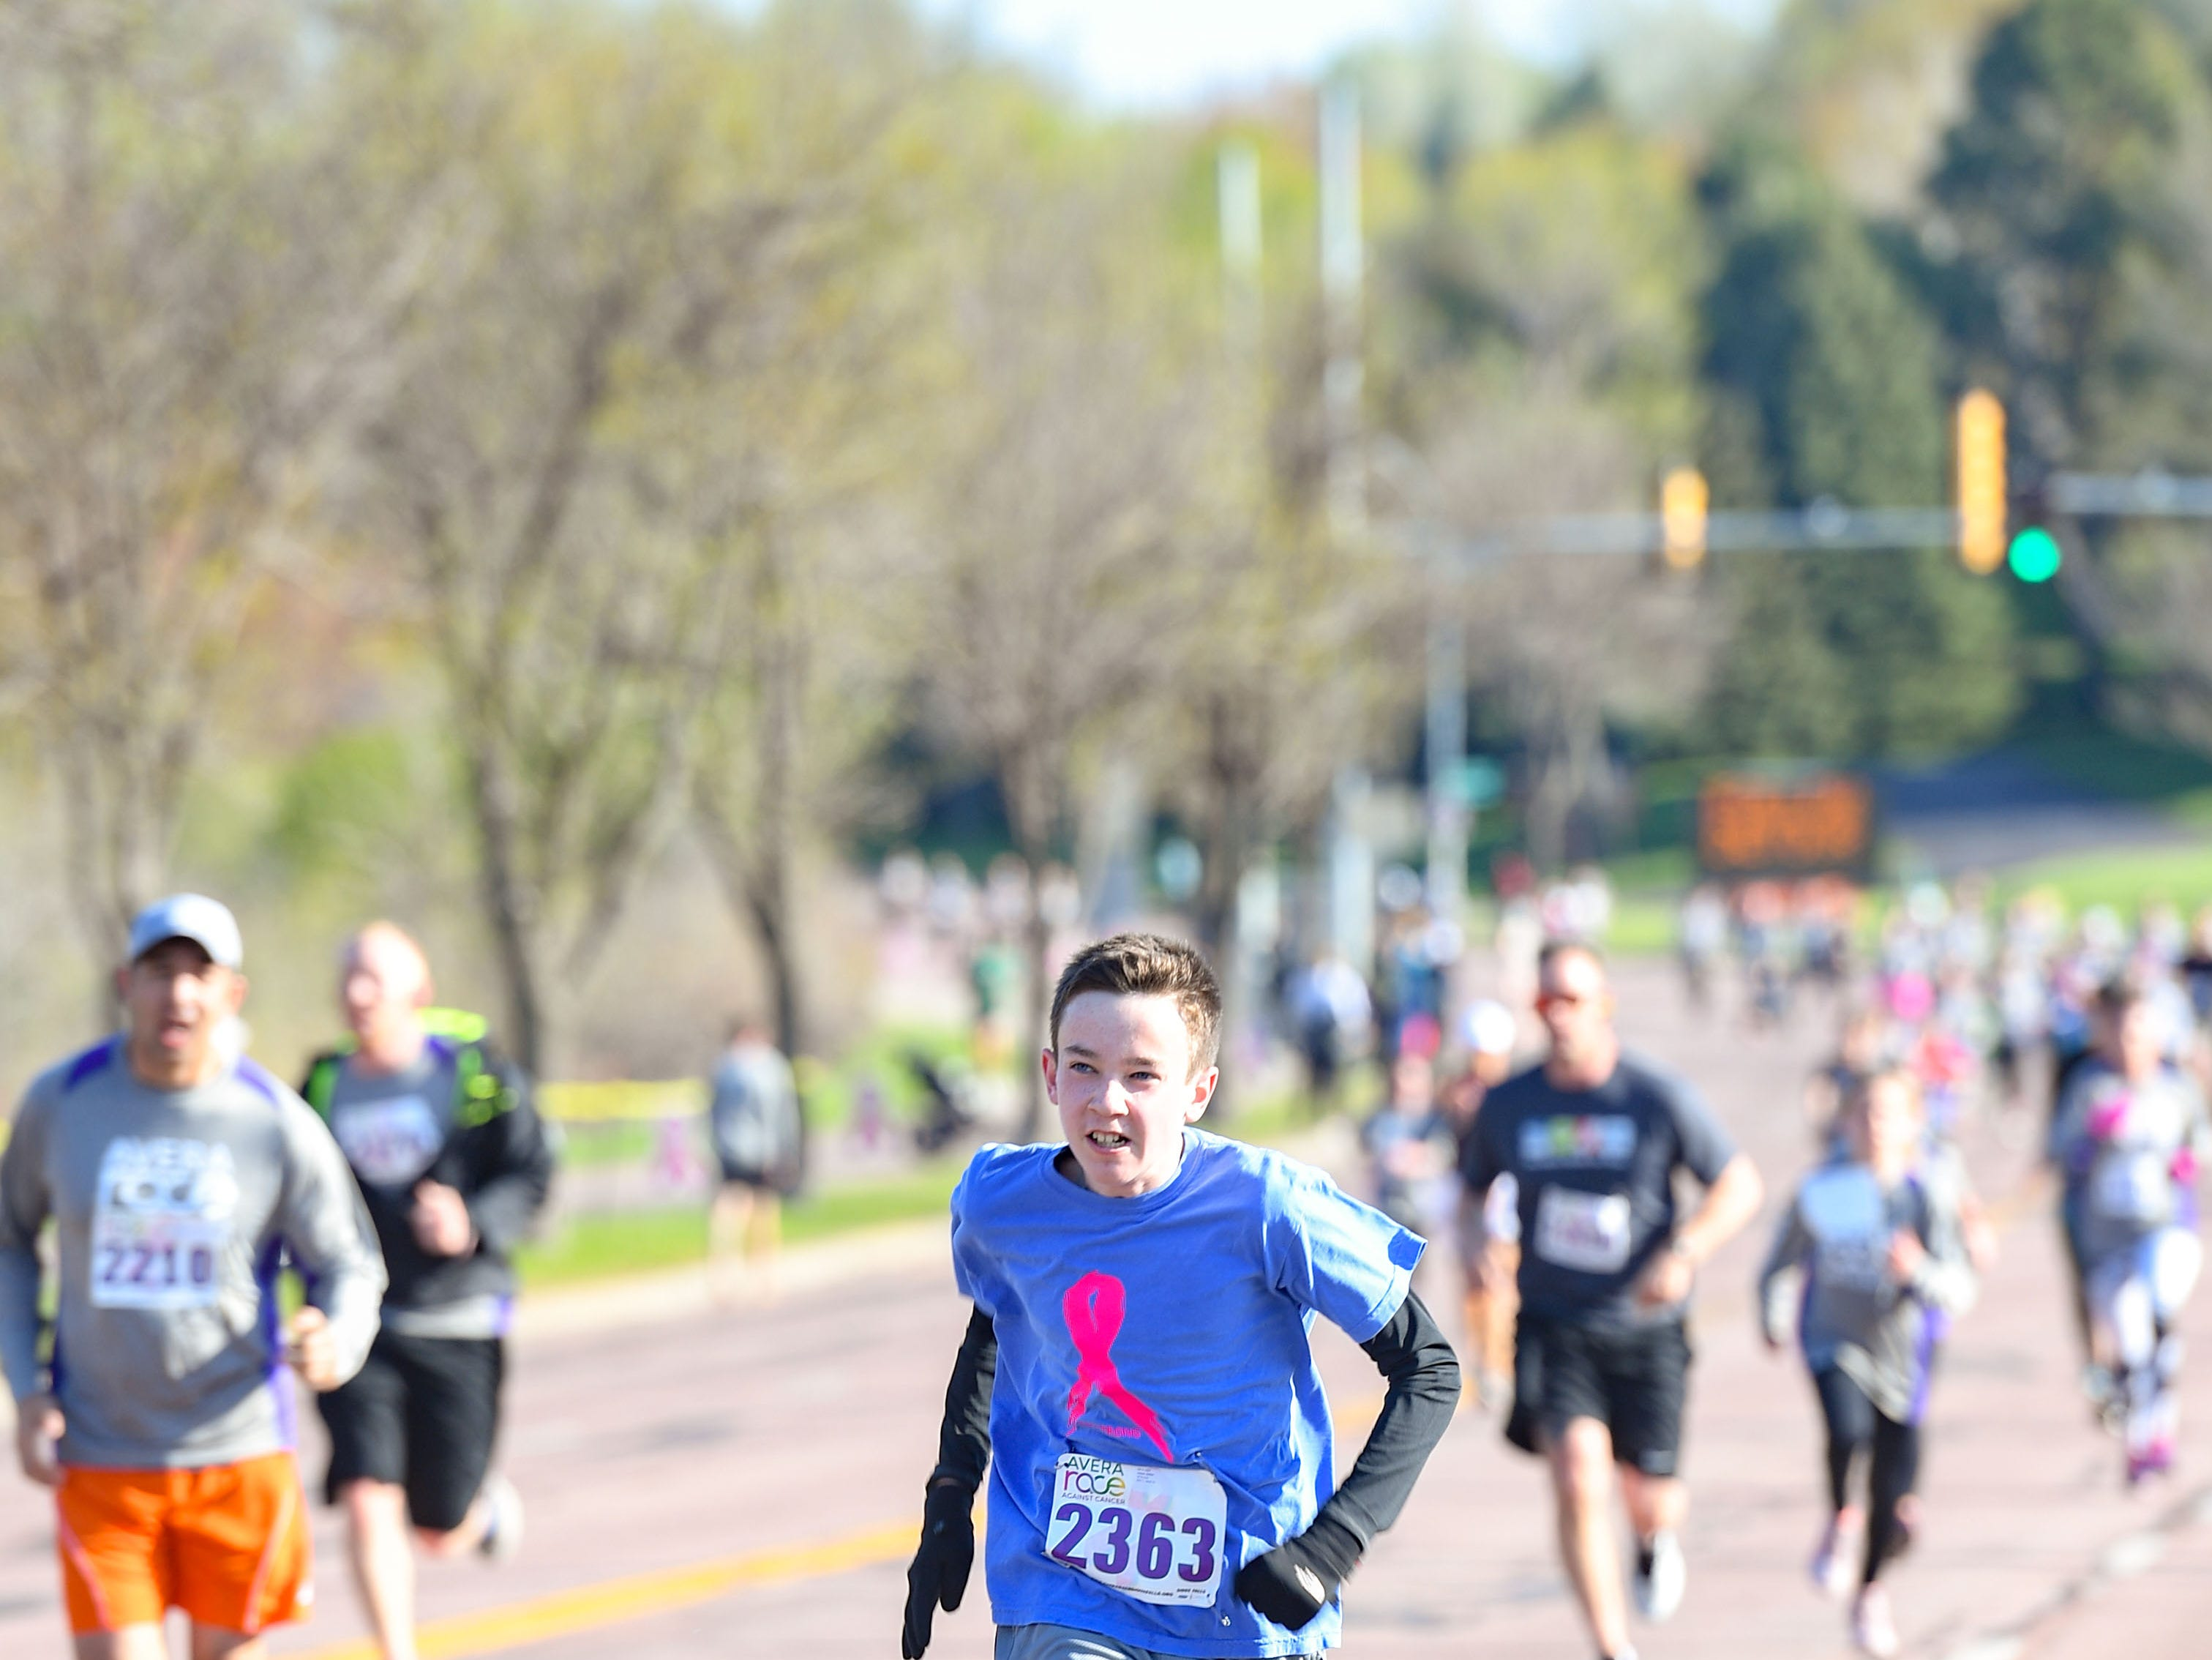 A young runner heads to the finish line at the 31st Avera Health Race Against Cancer on Saturday morning, May 11, in Sioux Falls.